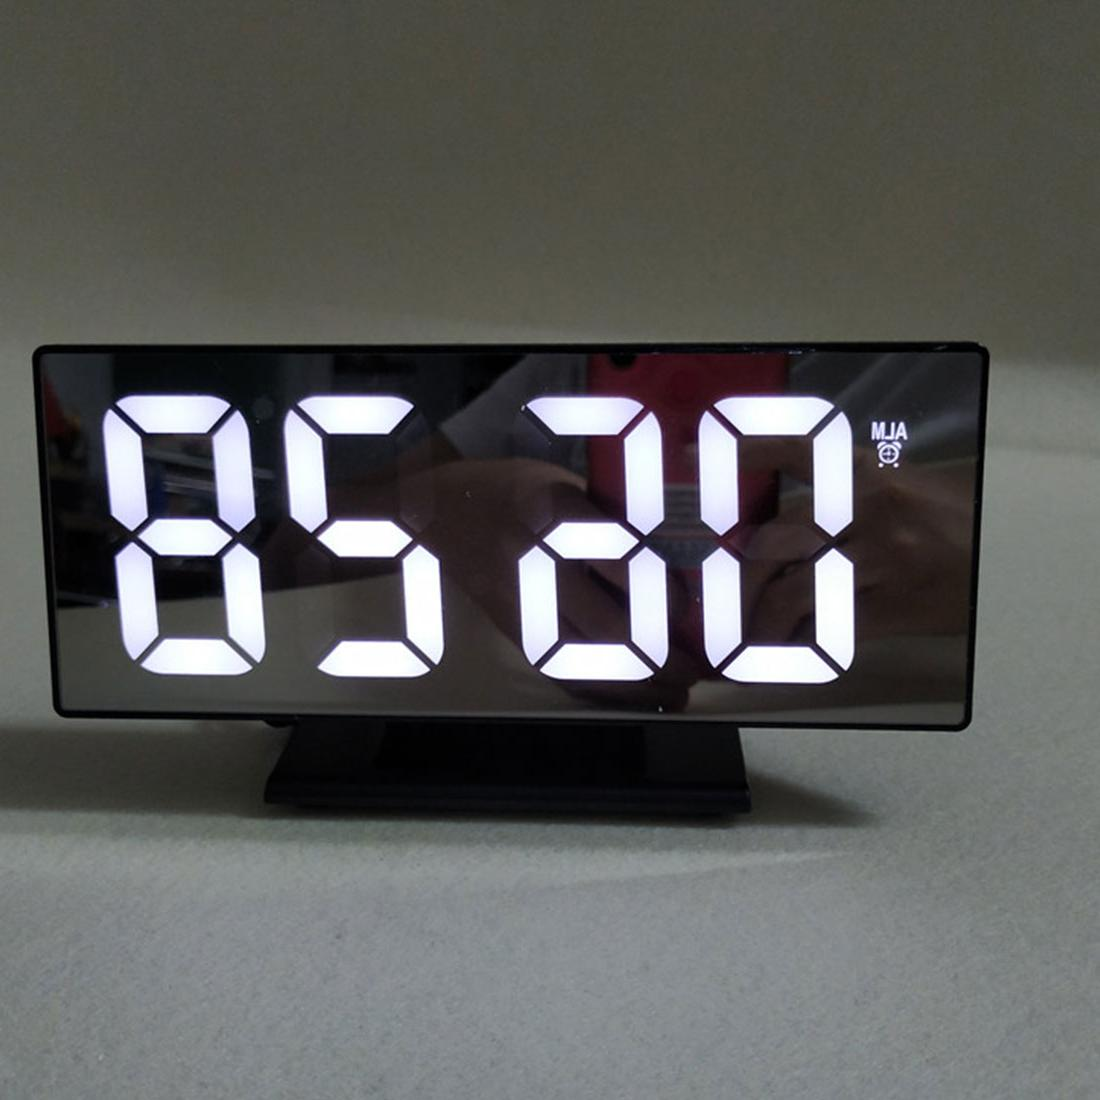 Multifunction Digital Alarm <font><b>Clock</b></font> LED Display Mirror Desktop reloj <font><b>USB</b></font>